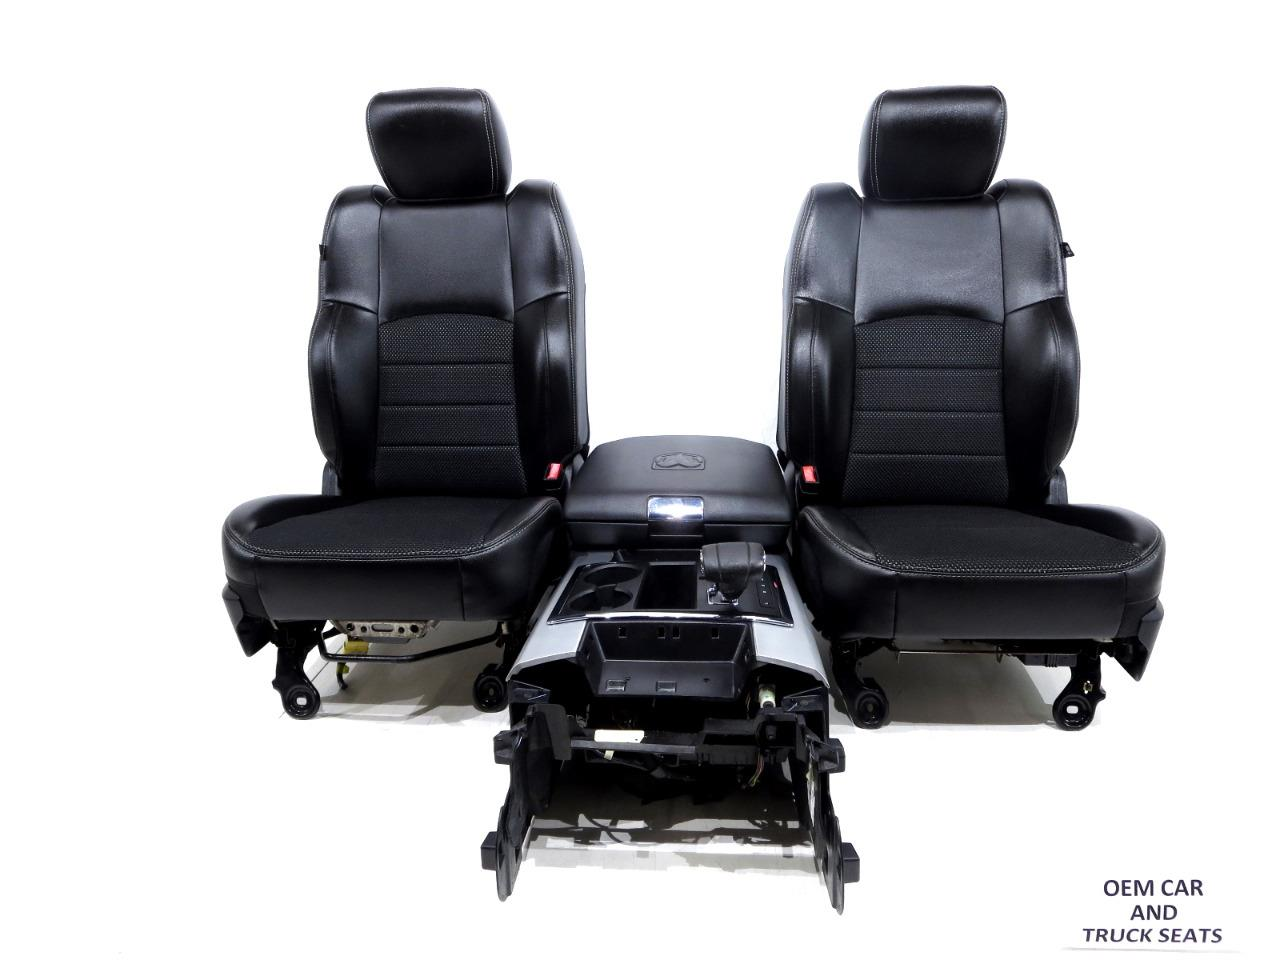 Replacement Dodge Ram Sport R T Oem Powered Front Cloth Vinyl Seats 2009 2010 2011 2012 2013 2014 2015 2016 2017 2018 Stock 1164i